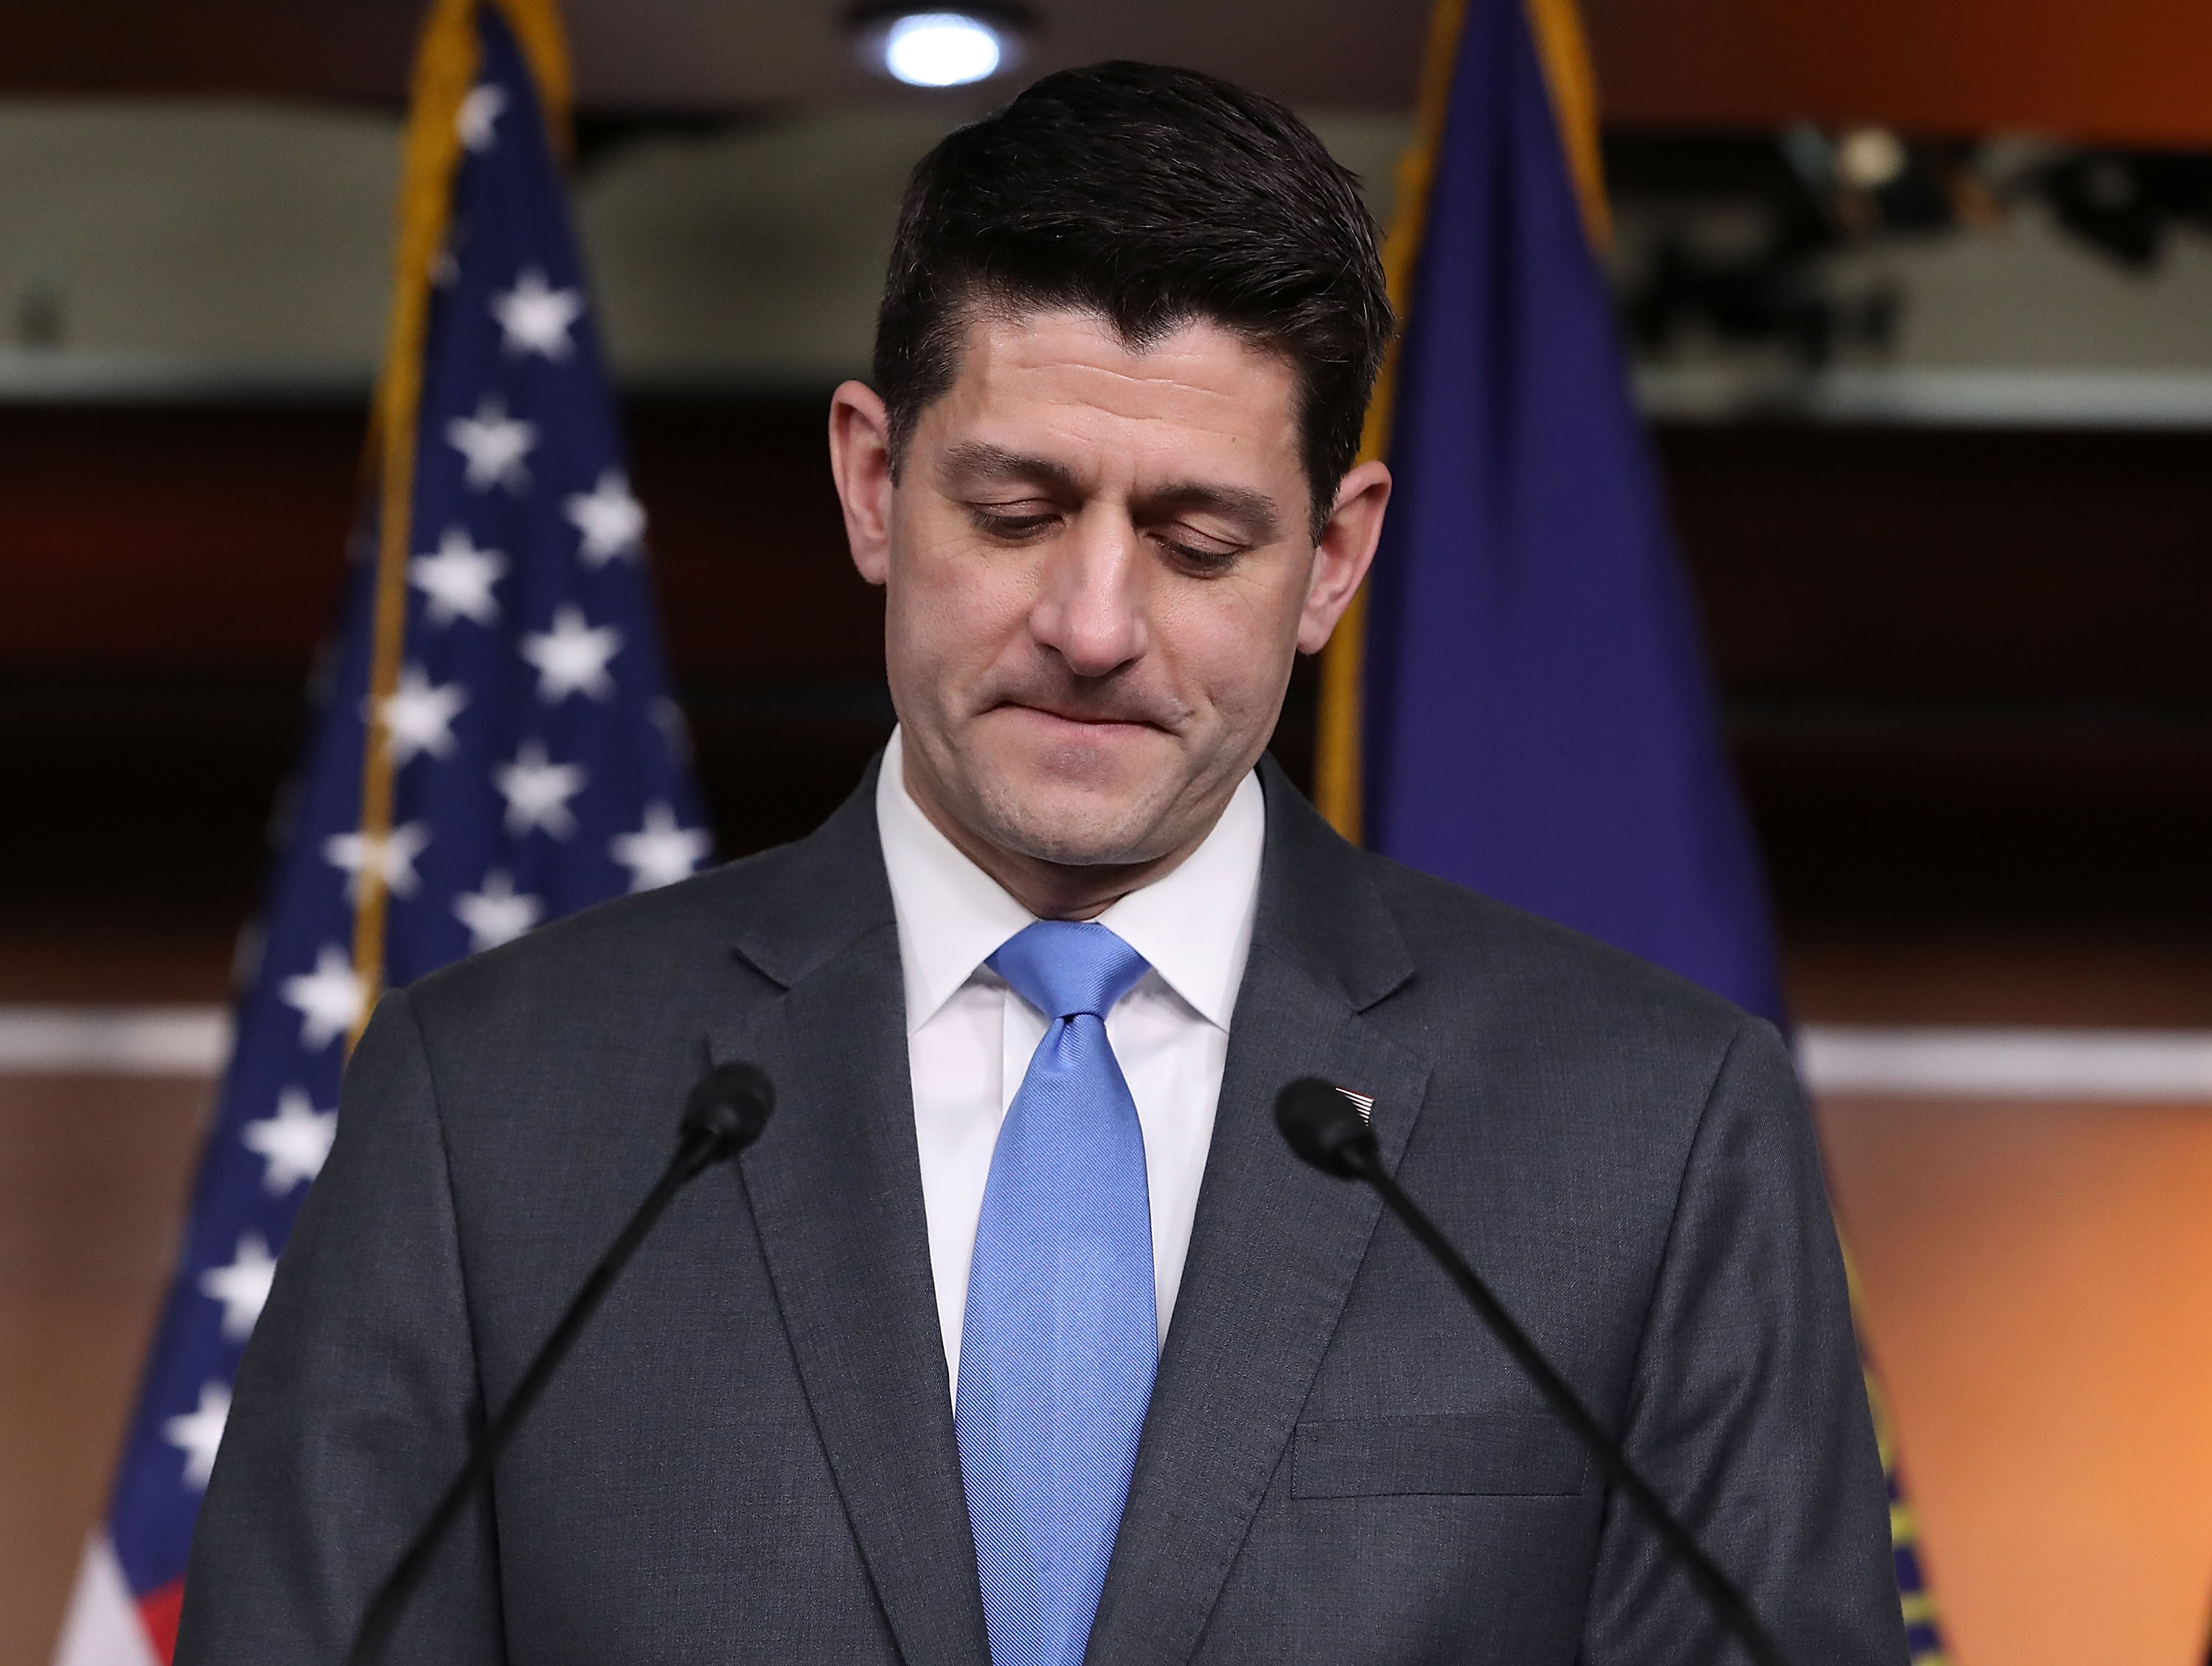 House Speaker Paul Ryan (R-WI), announces he will not seek re-election for another term in Congress, during a news conference at the US. Capitol, on April 11, 2018 in Washington, DC. Paul Ryan plans to serve out the remainder of his term and retire in January, marking 20 years in Congress.